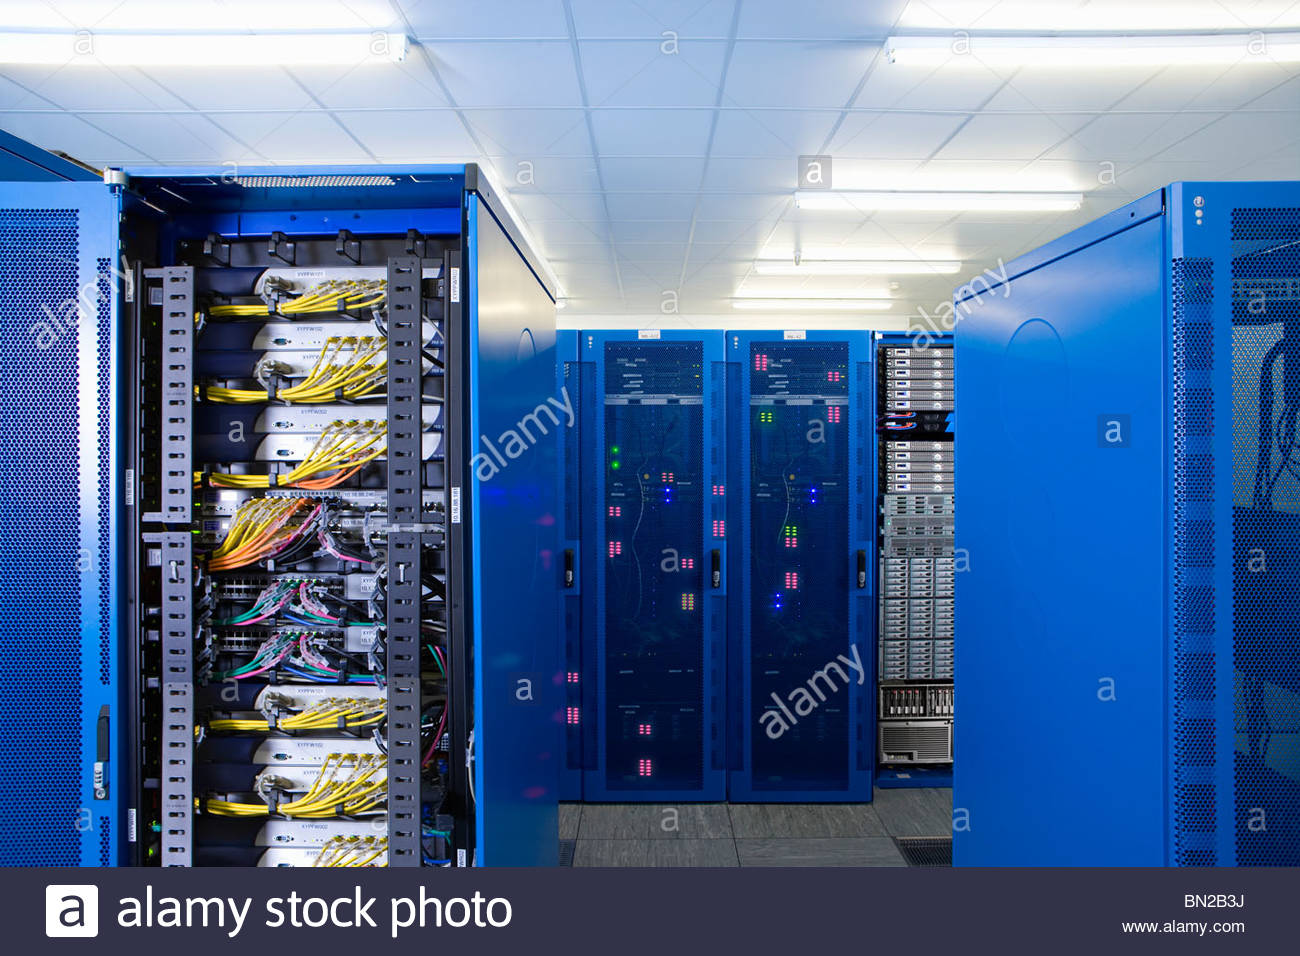 Server Room Photography : Mainframe computers in network server room stock photo